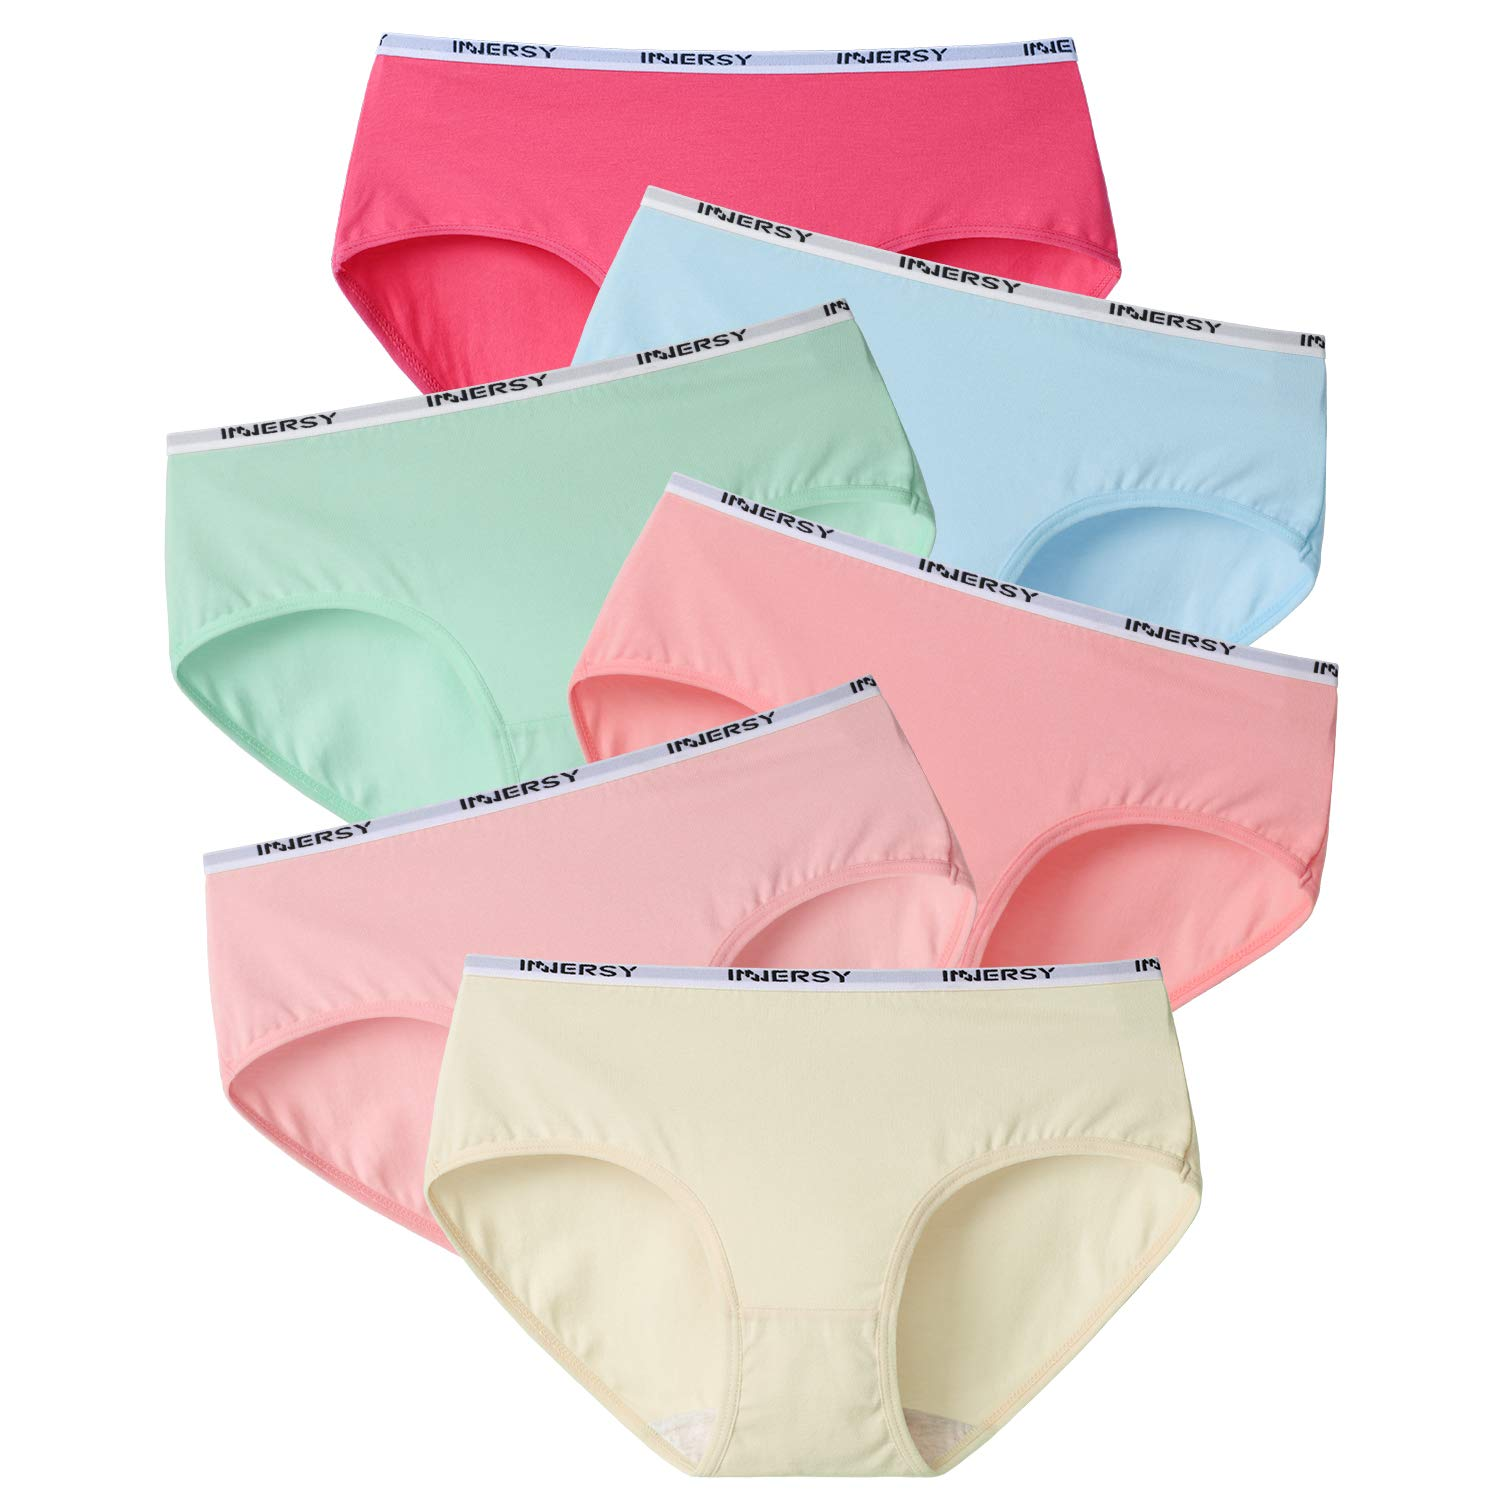 INNERSY Women's Briefs Panties Low Rise Cotton Hipster Underwear Pack of 6